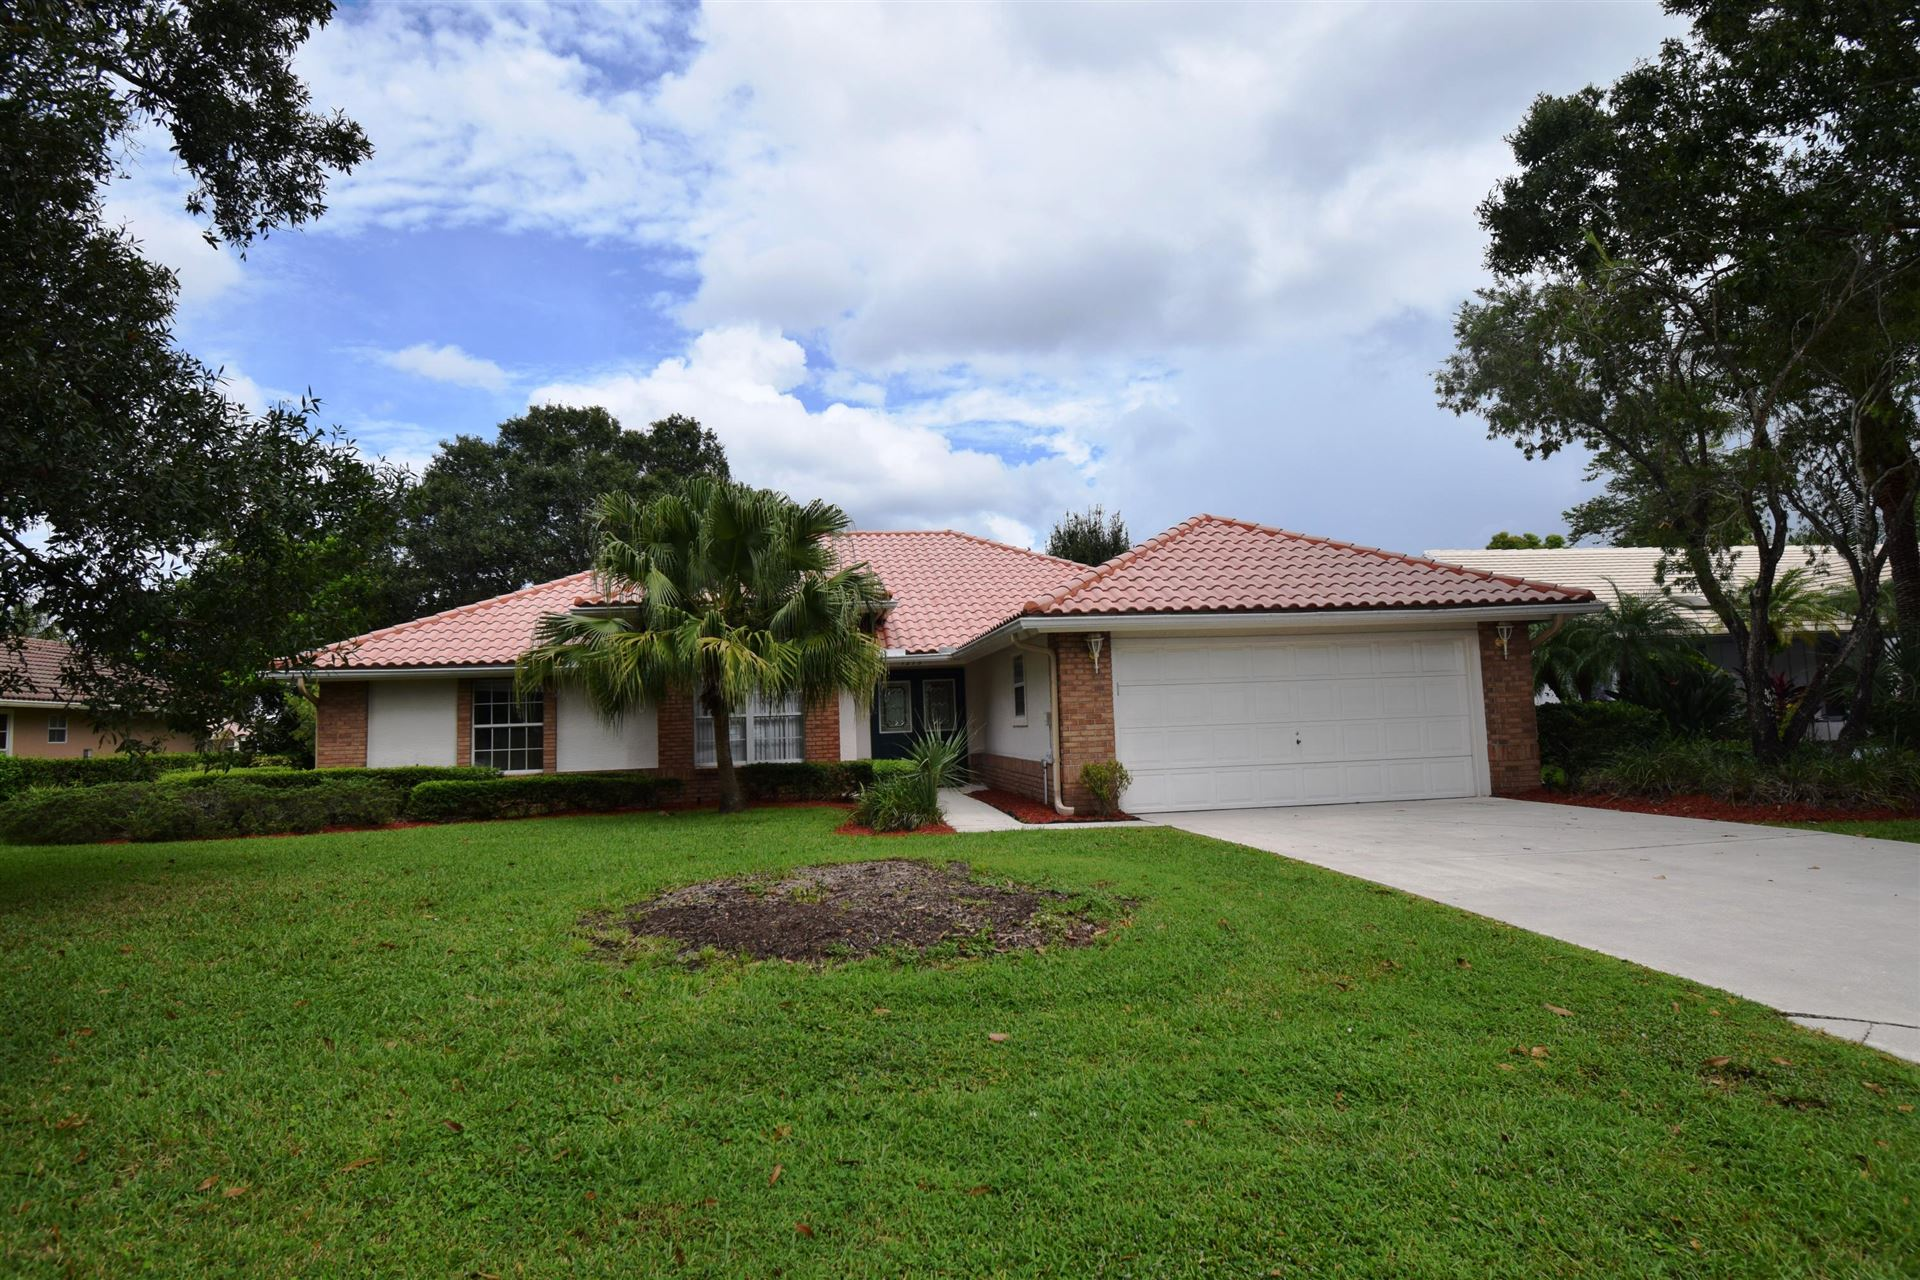 Photo of 1273 SW Cedar Cove, Port Saint Lucie, FL 34986 (MLS # RX-10659139)